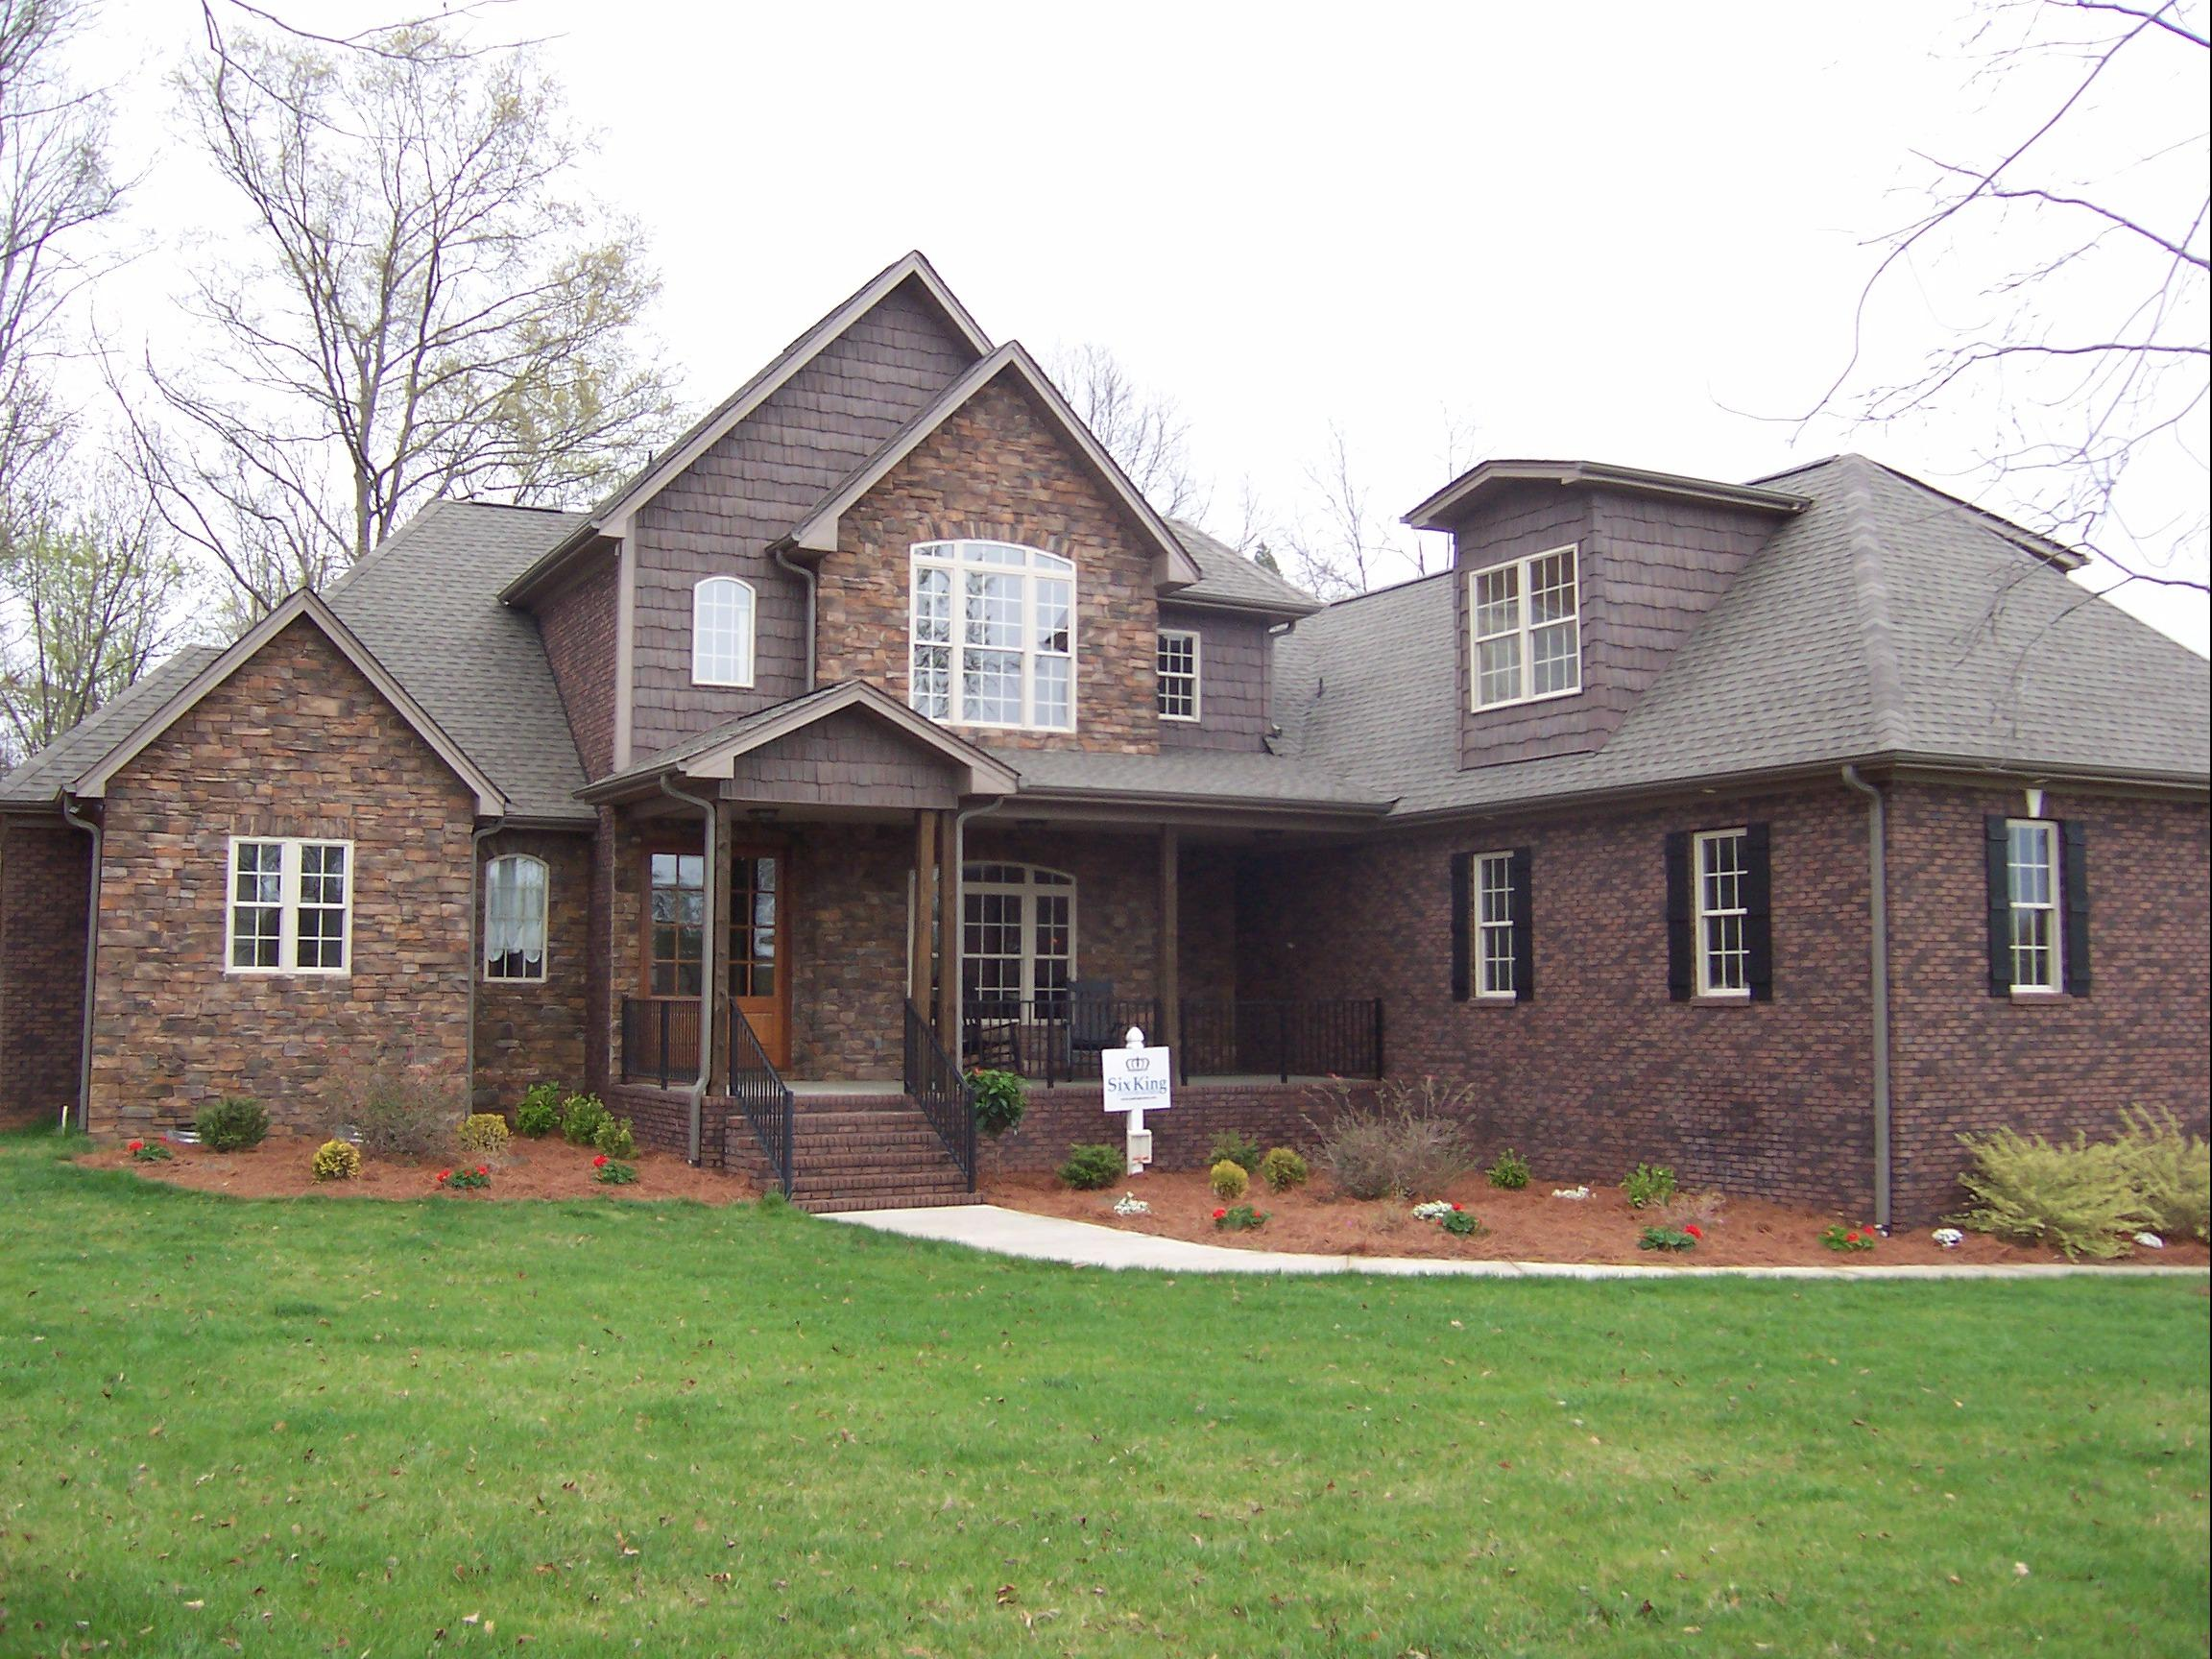 six king custom homes coupons near me in lake wylie 8coupons